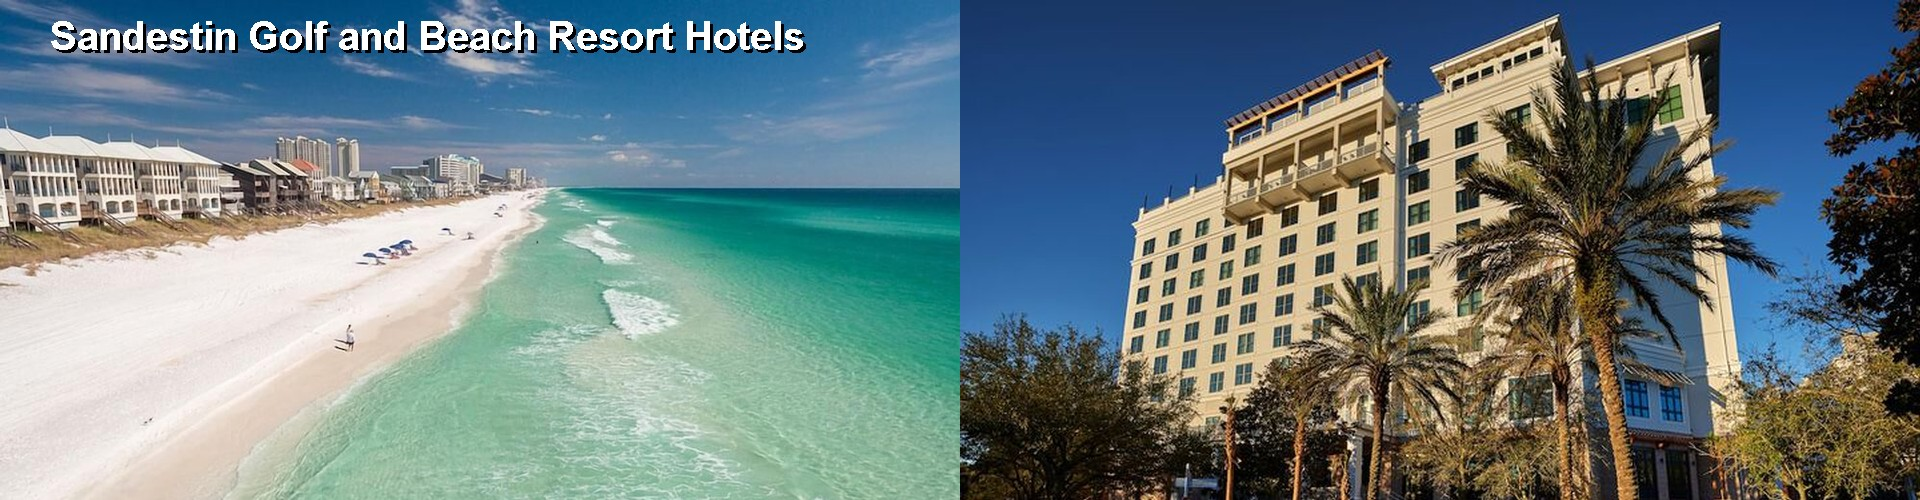 5 Best Hotels near Sandestin Golf and Beach Resort